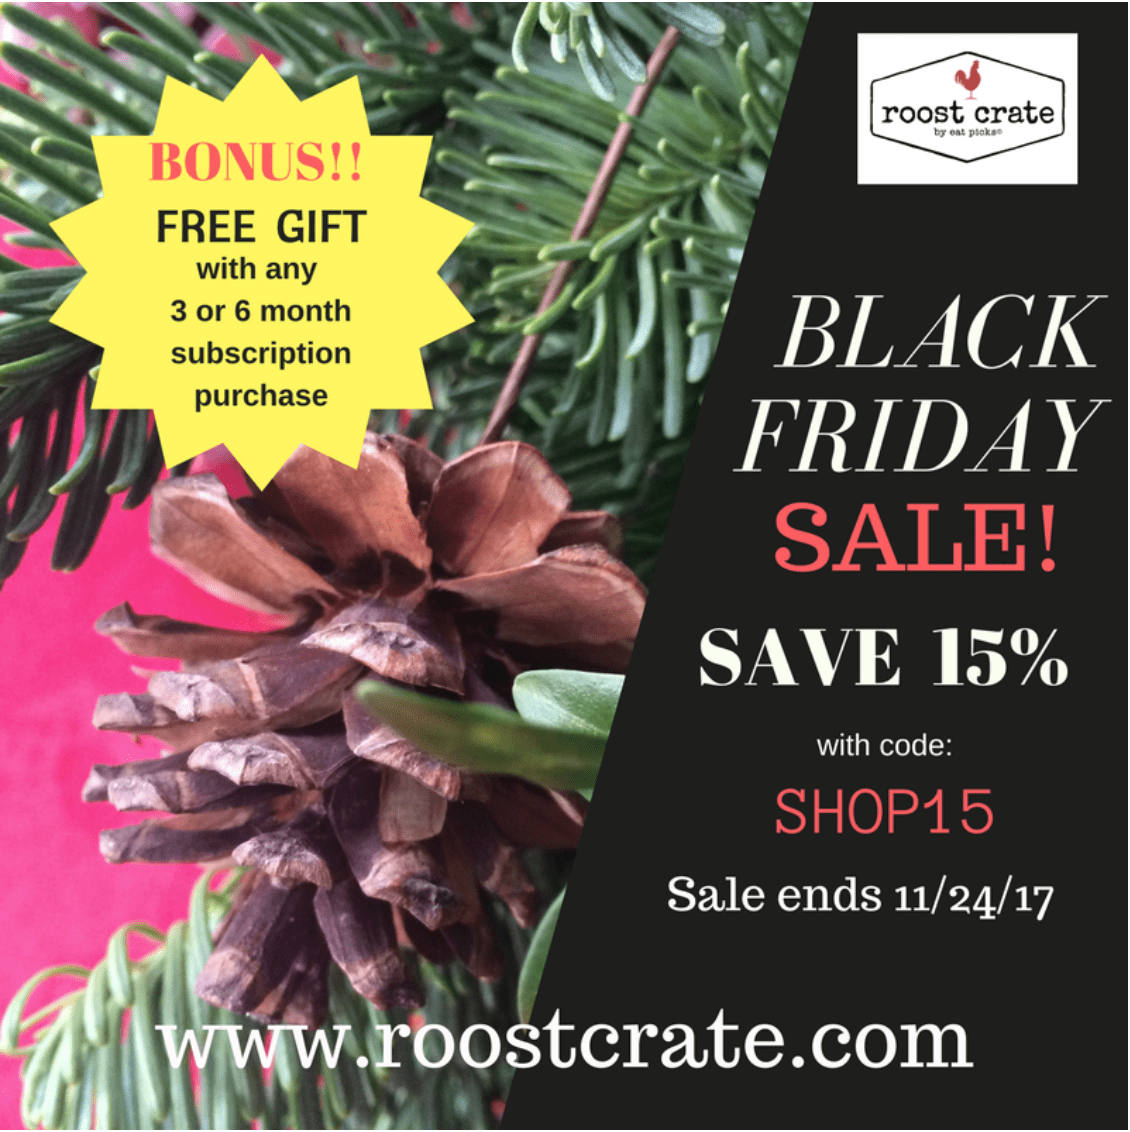 Roost Crate Black Friday 15% Off Subscriptions